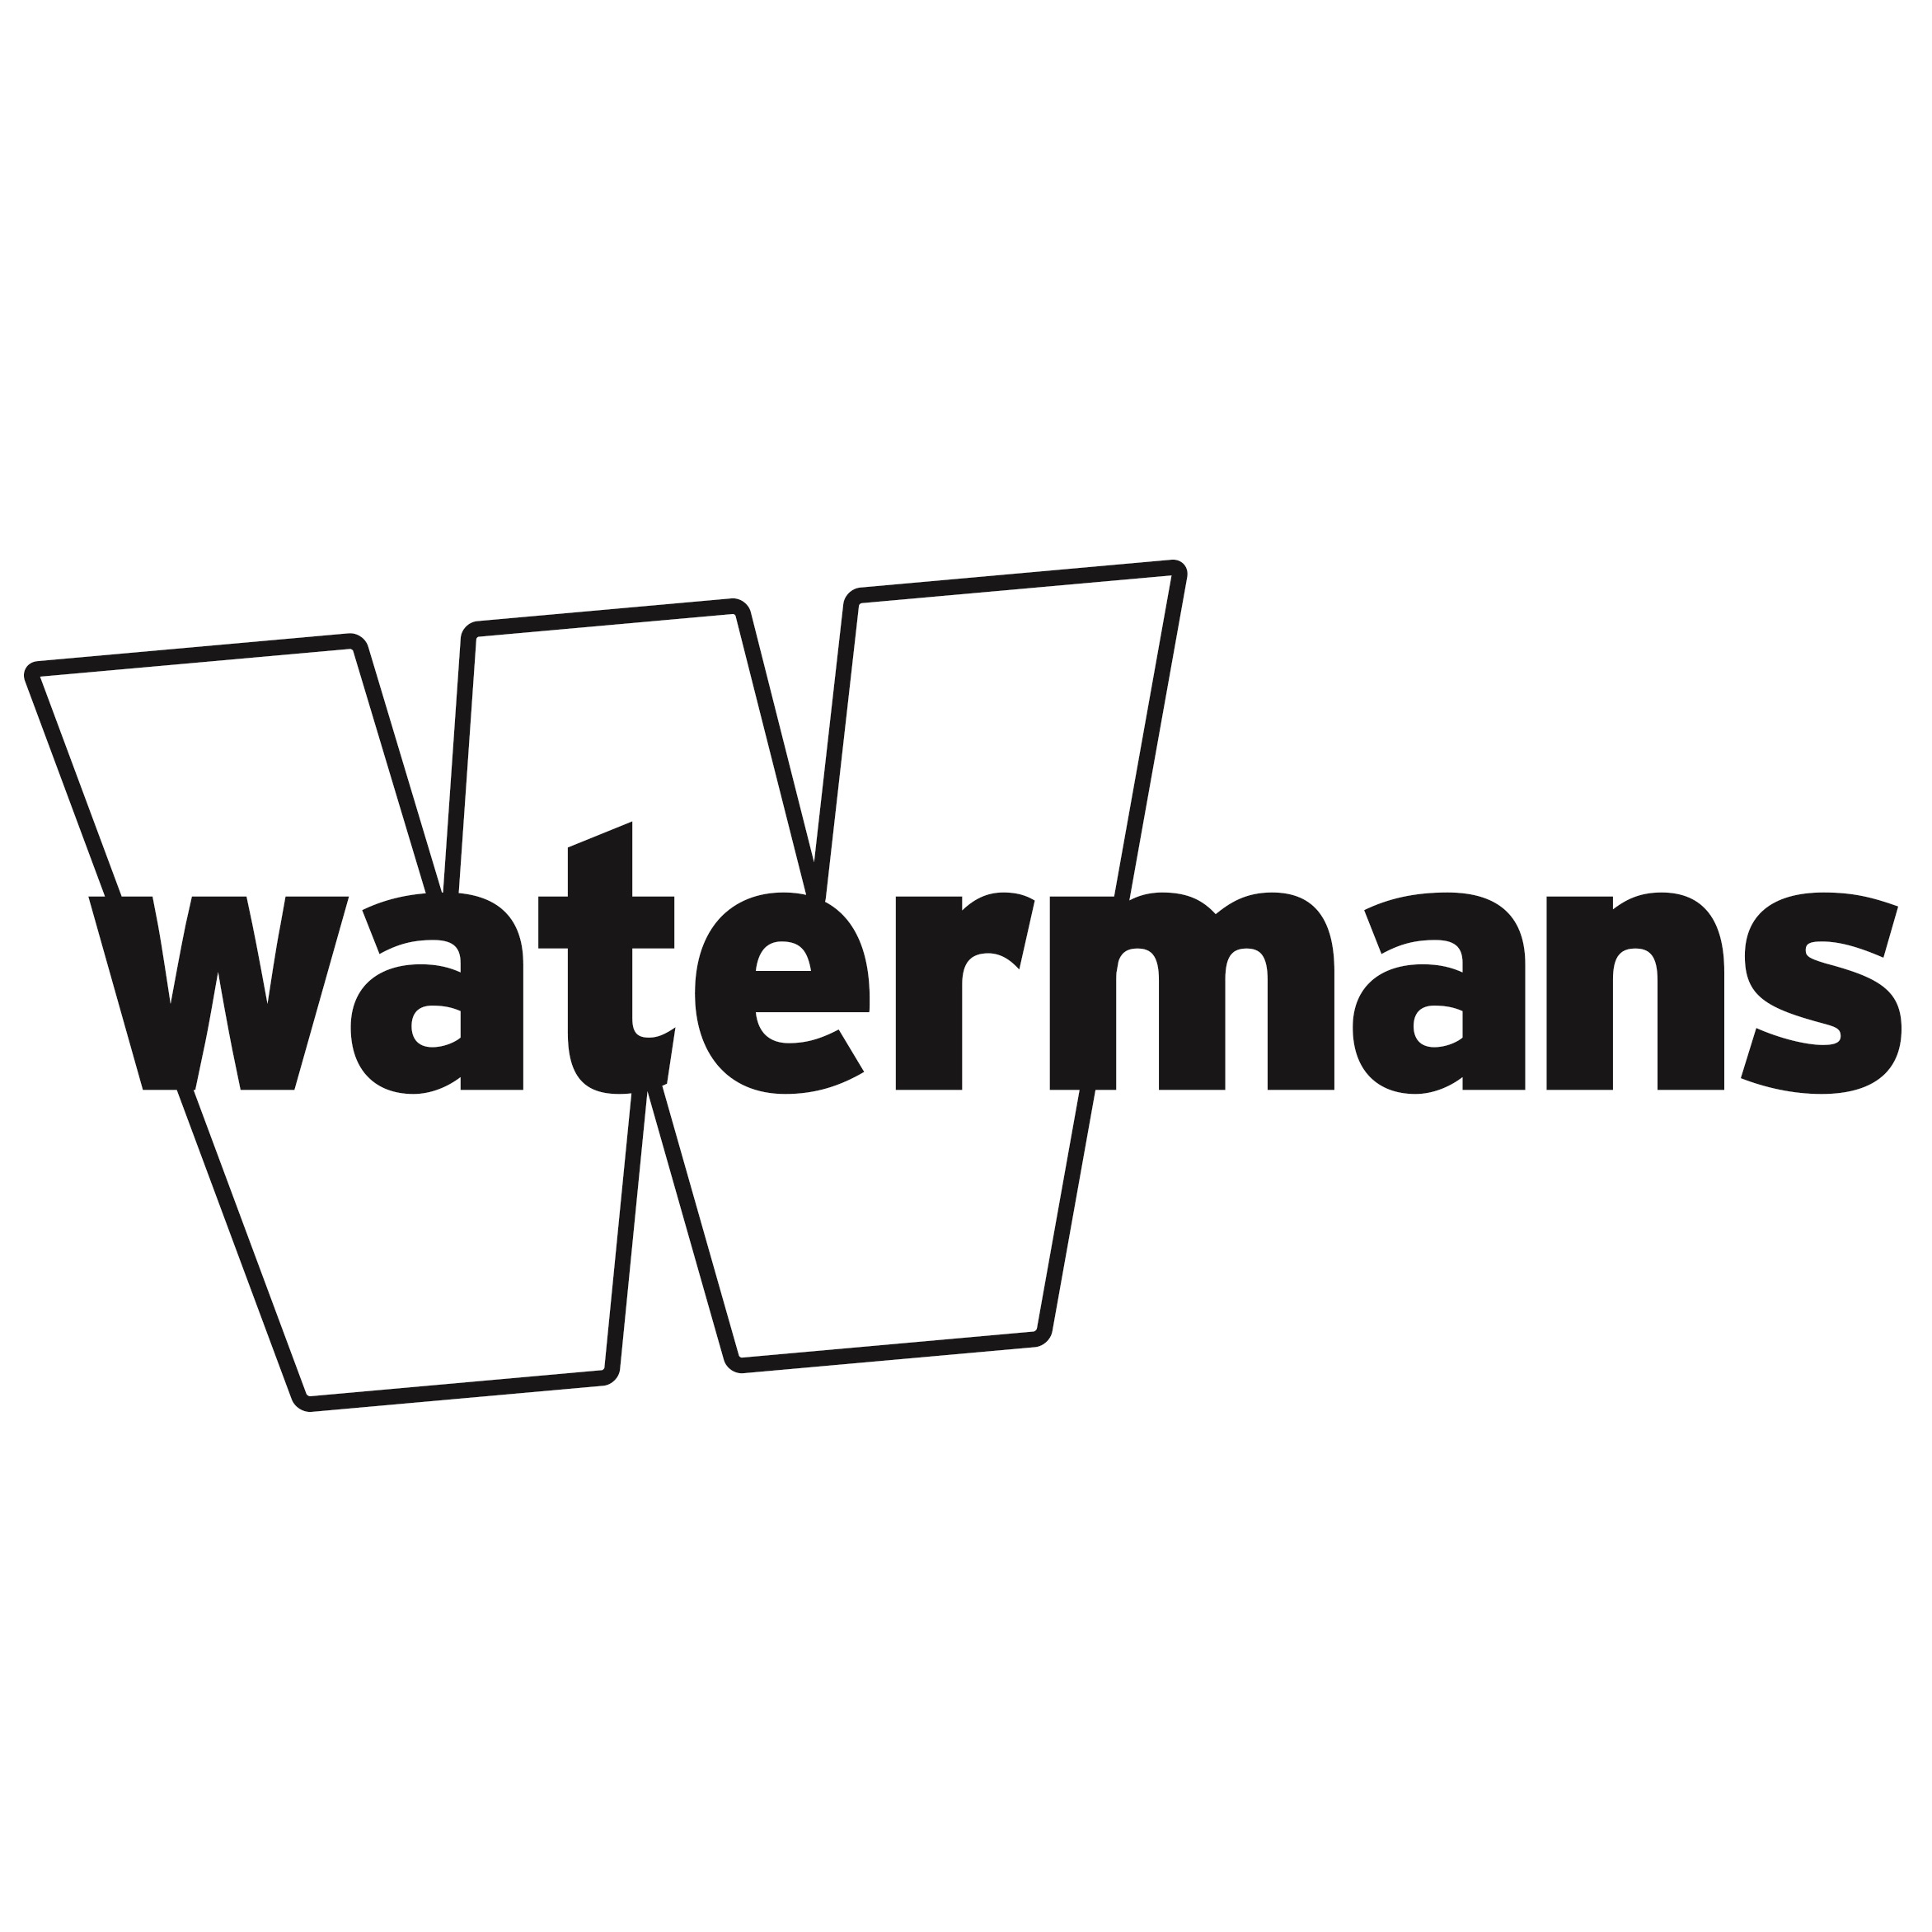 Watermans Arts Centre, Brentford